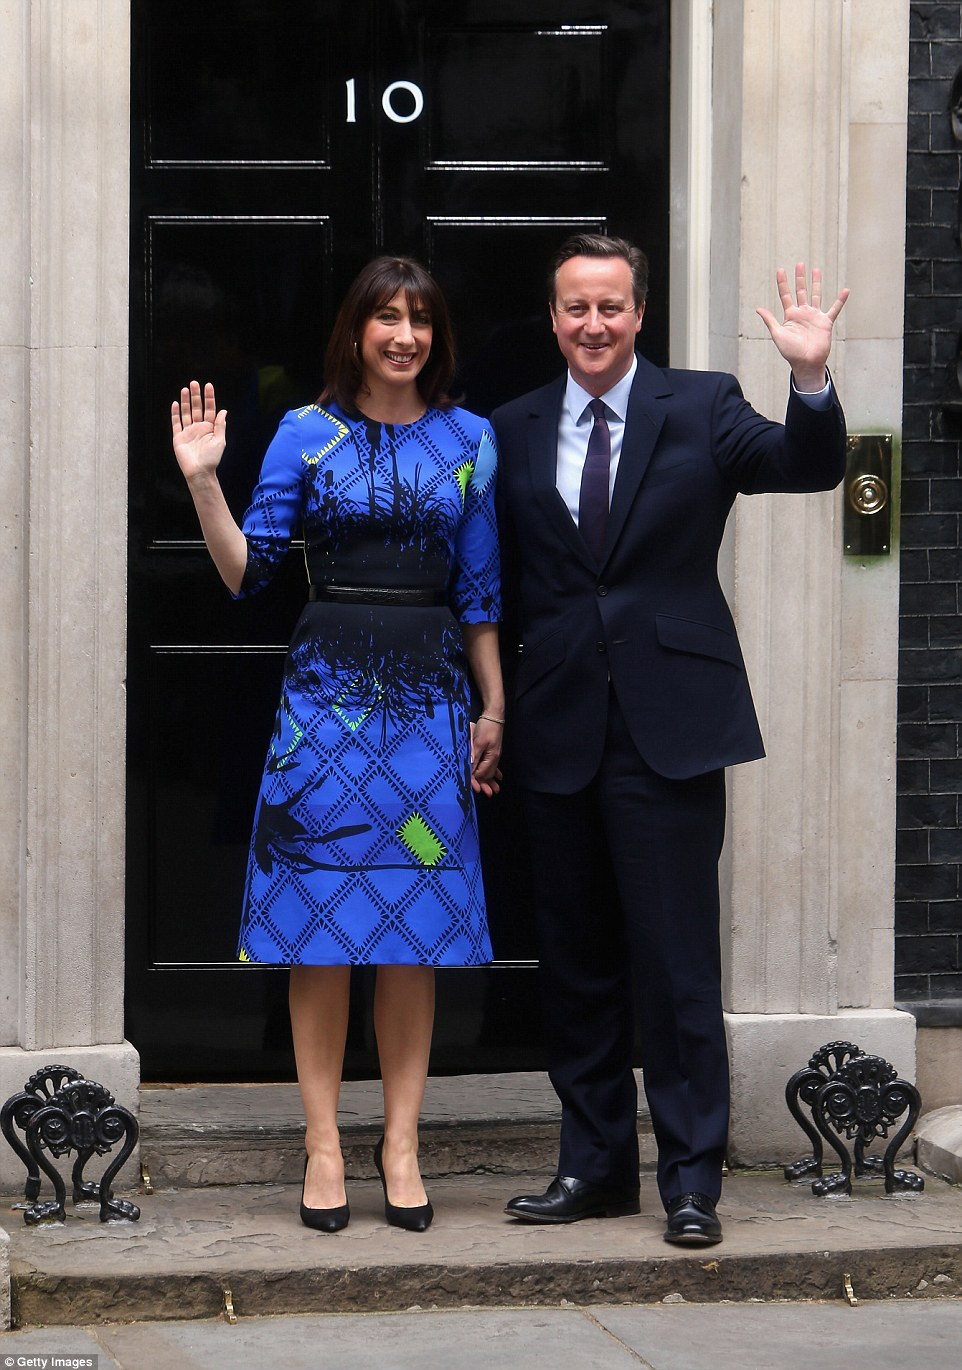 The former prime minister is understood to have bought the Fiat for his wife Samantha as a birthday present, the couple are pictured here outside Number 10 Downing Street. In Mat 2016 it was also reported that Mr Cameron has bought a £1,500 used Nissan Micra as a 'cheap run-around' for his wife